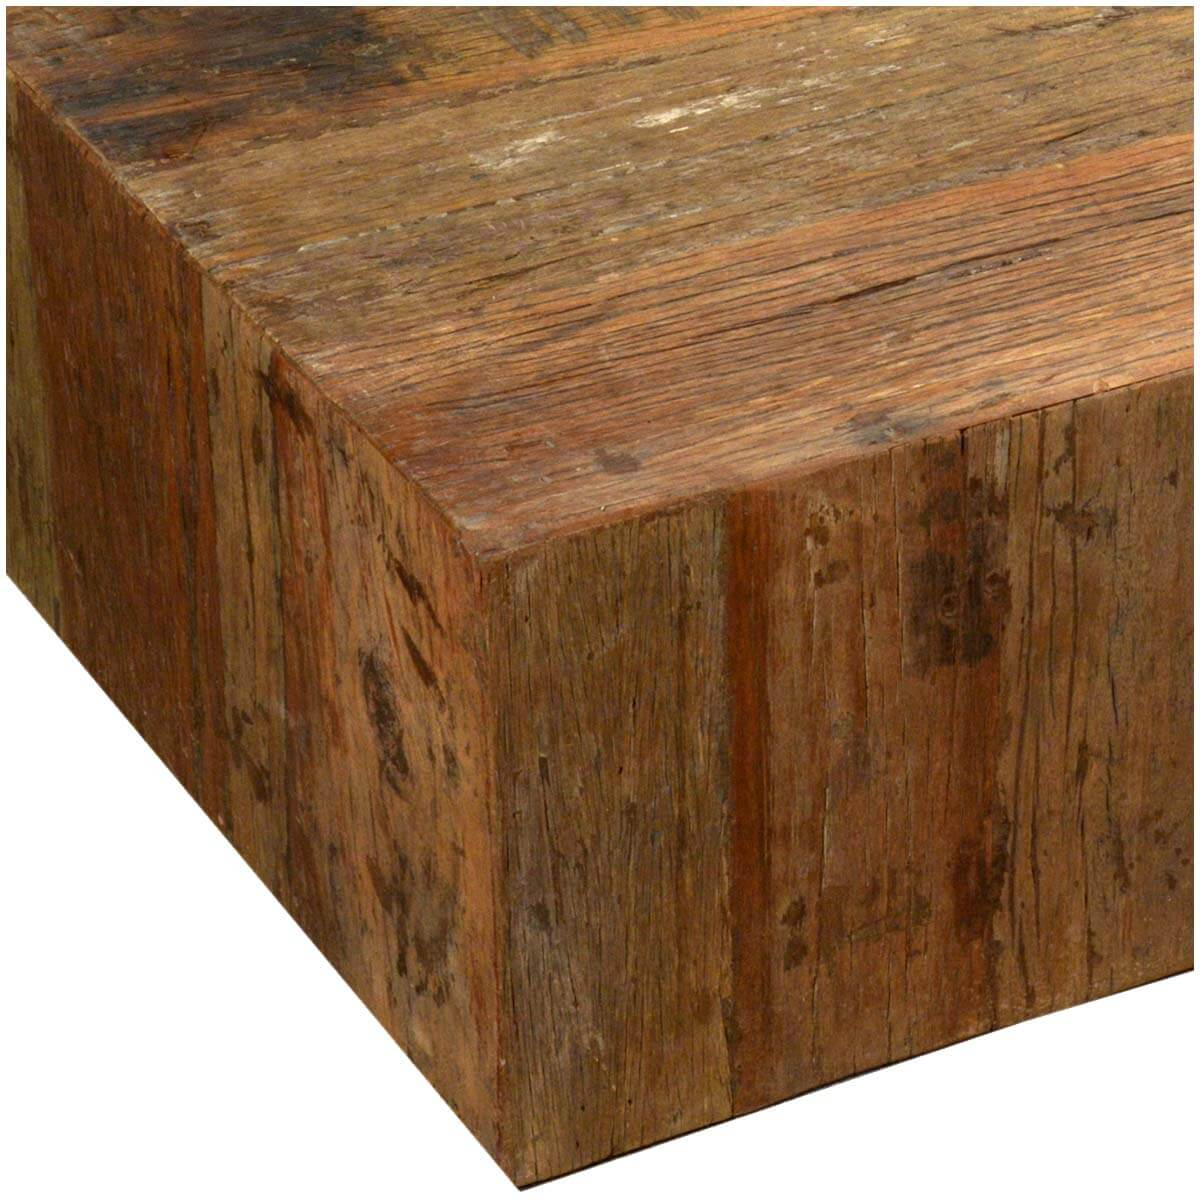 Unique Rustic Railroad Reclaimed Wood Square Coffee Table